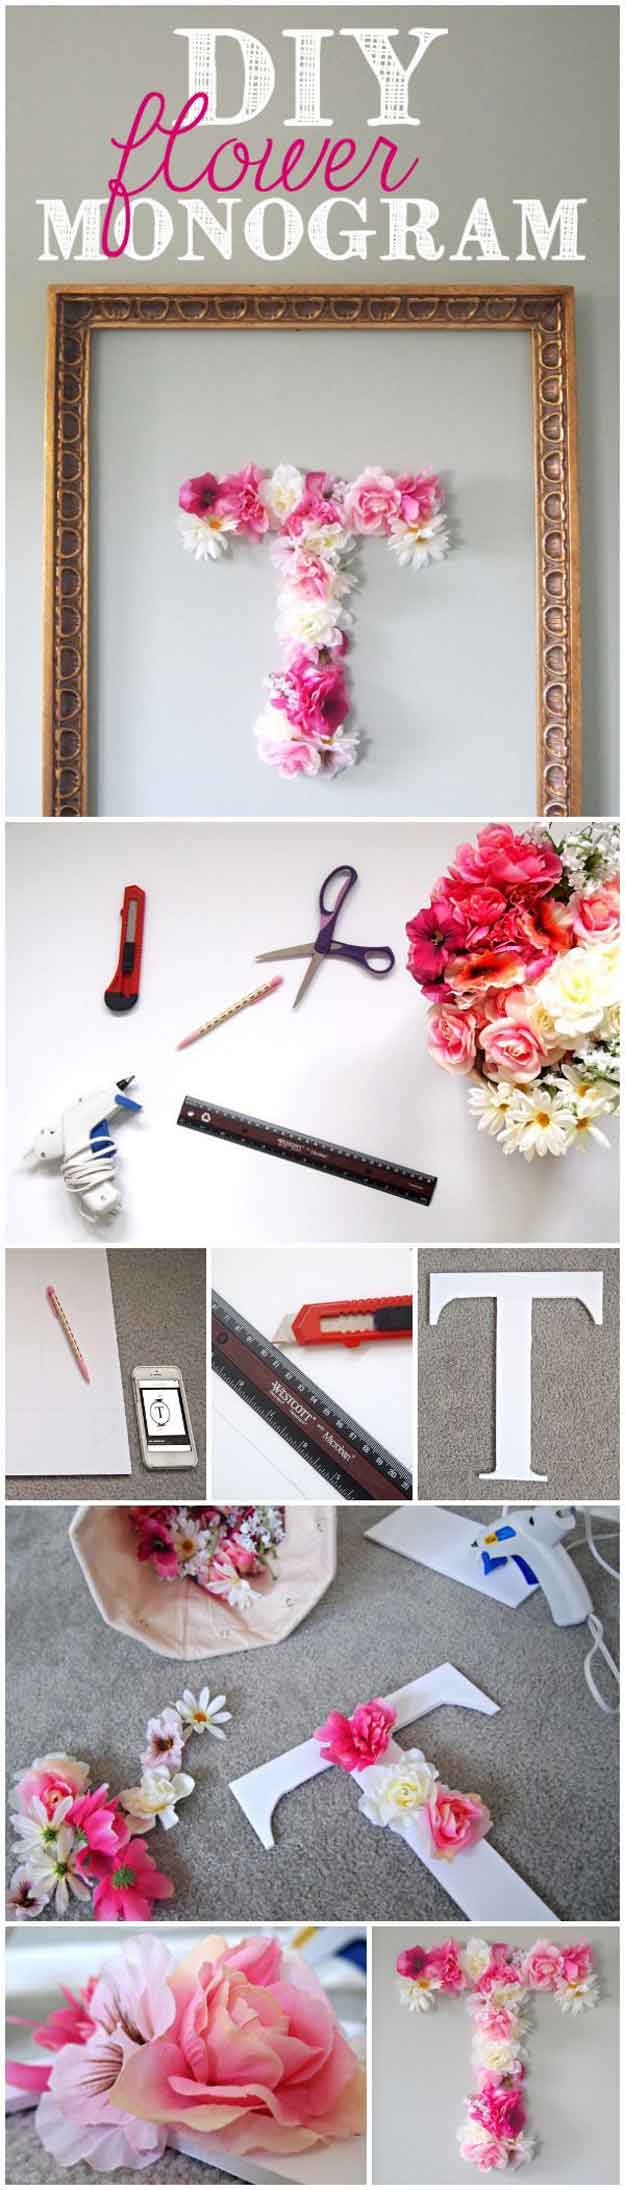 Diy bedroom decor ideas - Cute Diy Room Decor Ideas For Teens Diy Bedroom Projects For Teenagers Diy Flower